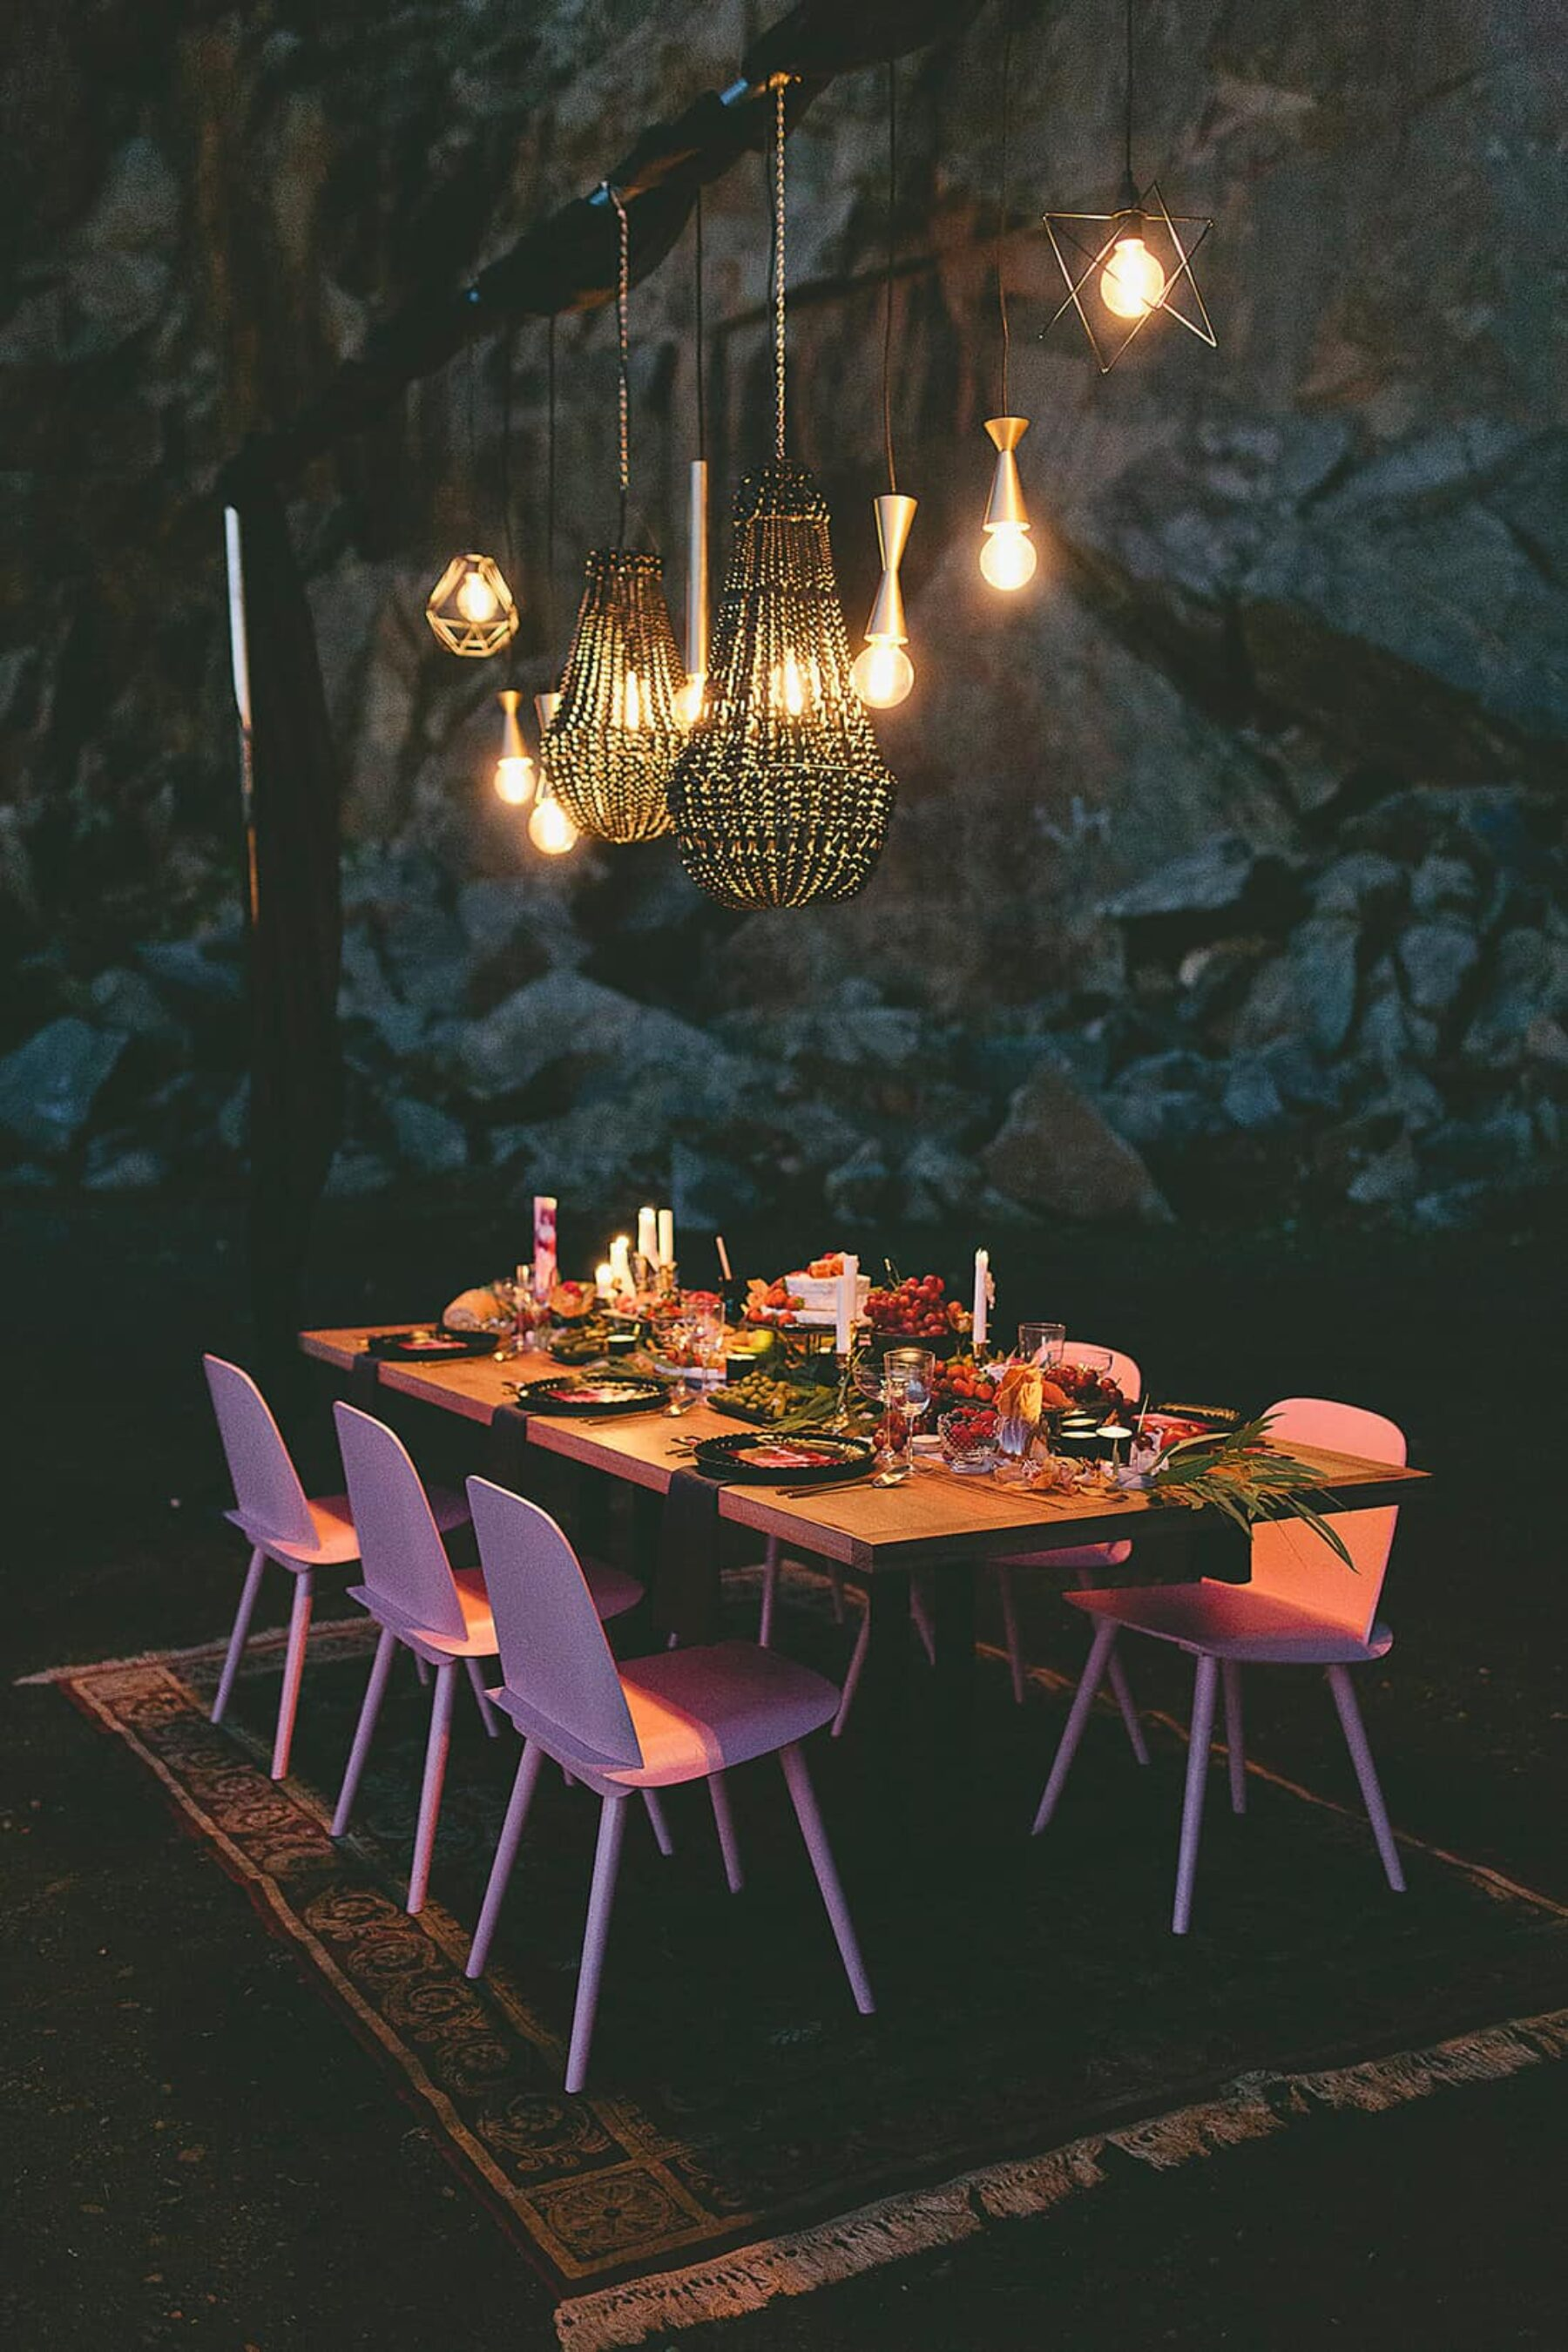 outdoor tablescape with hanging lights